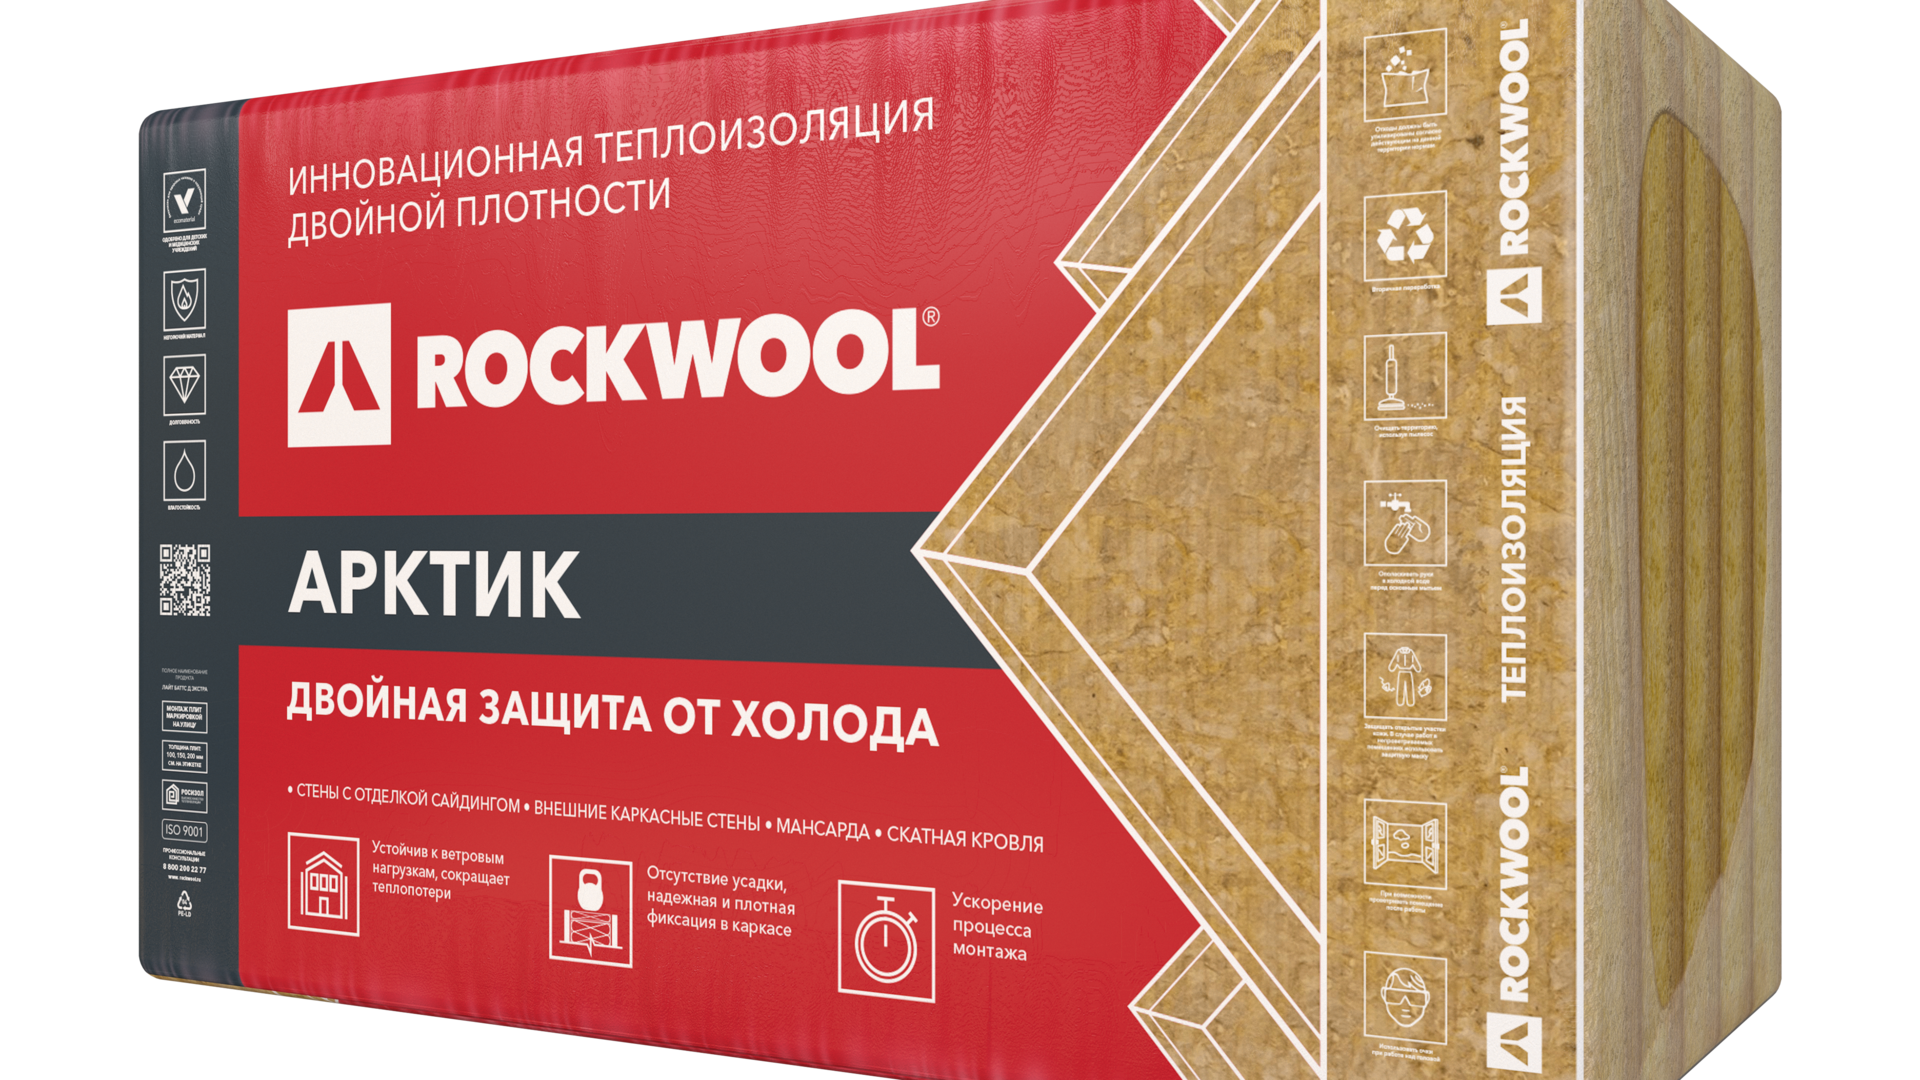 package, product, arctic, pitched roof